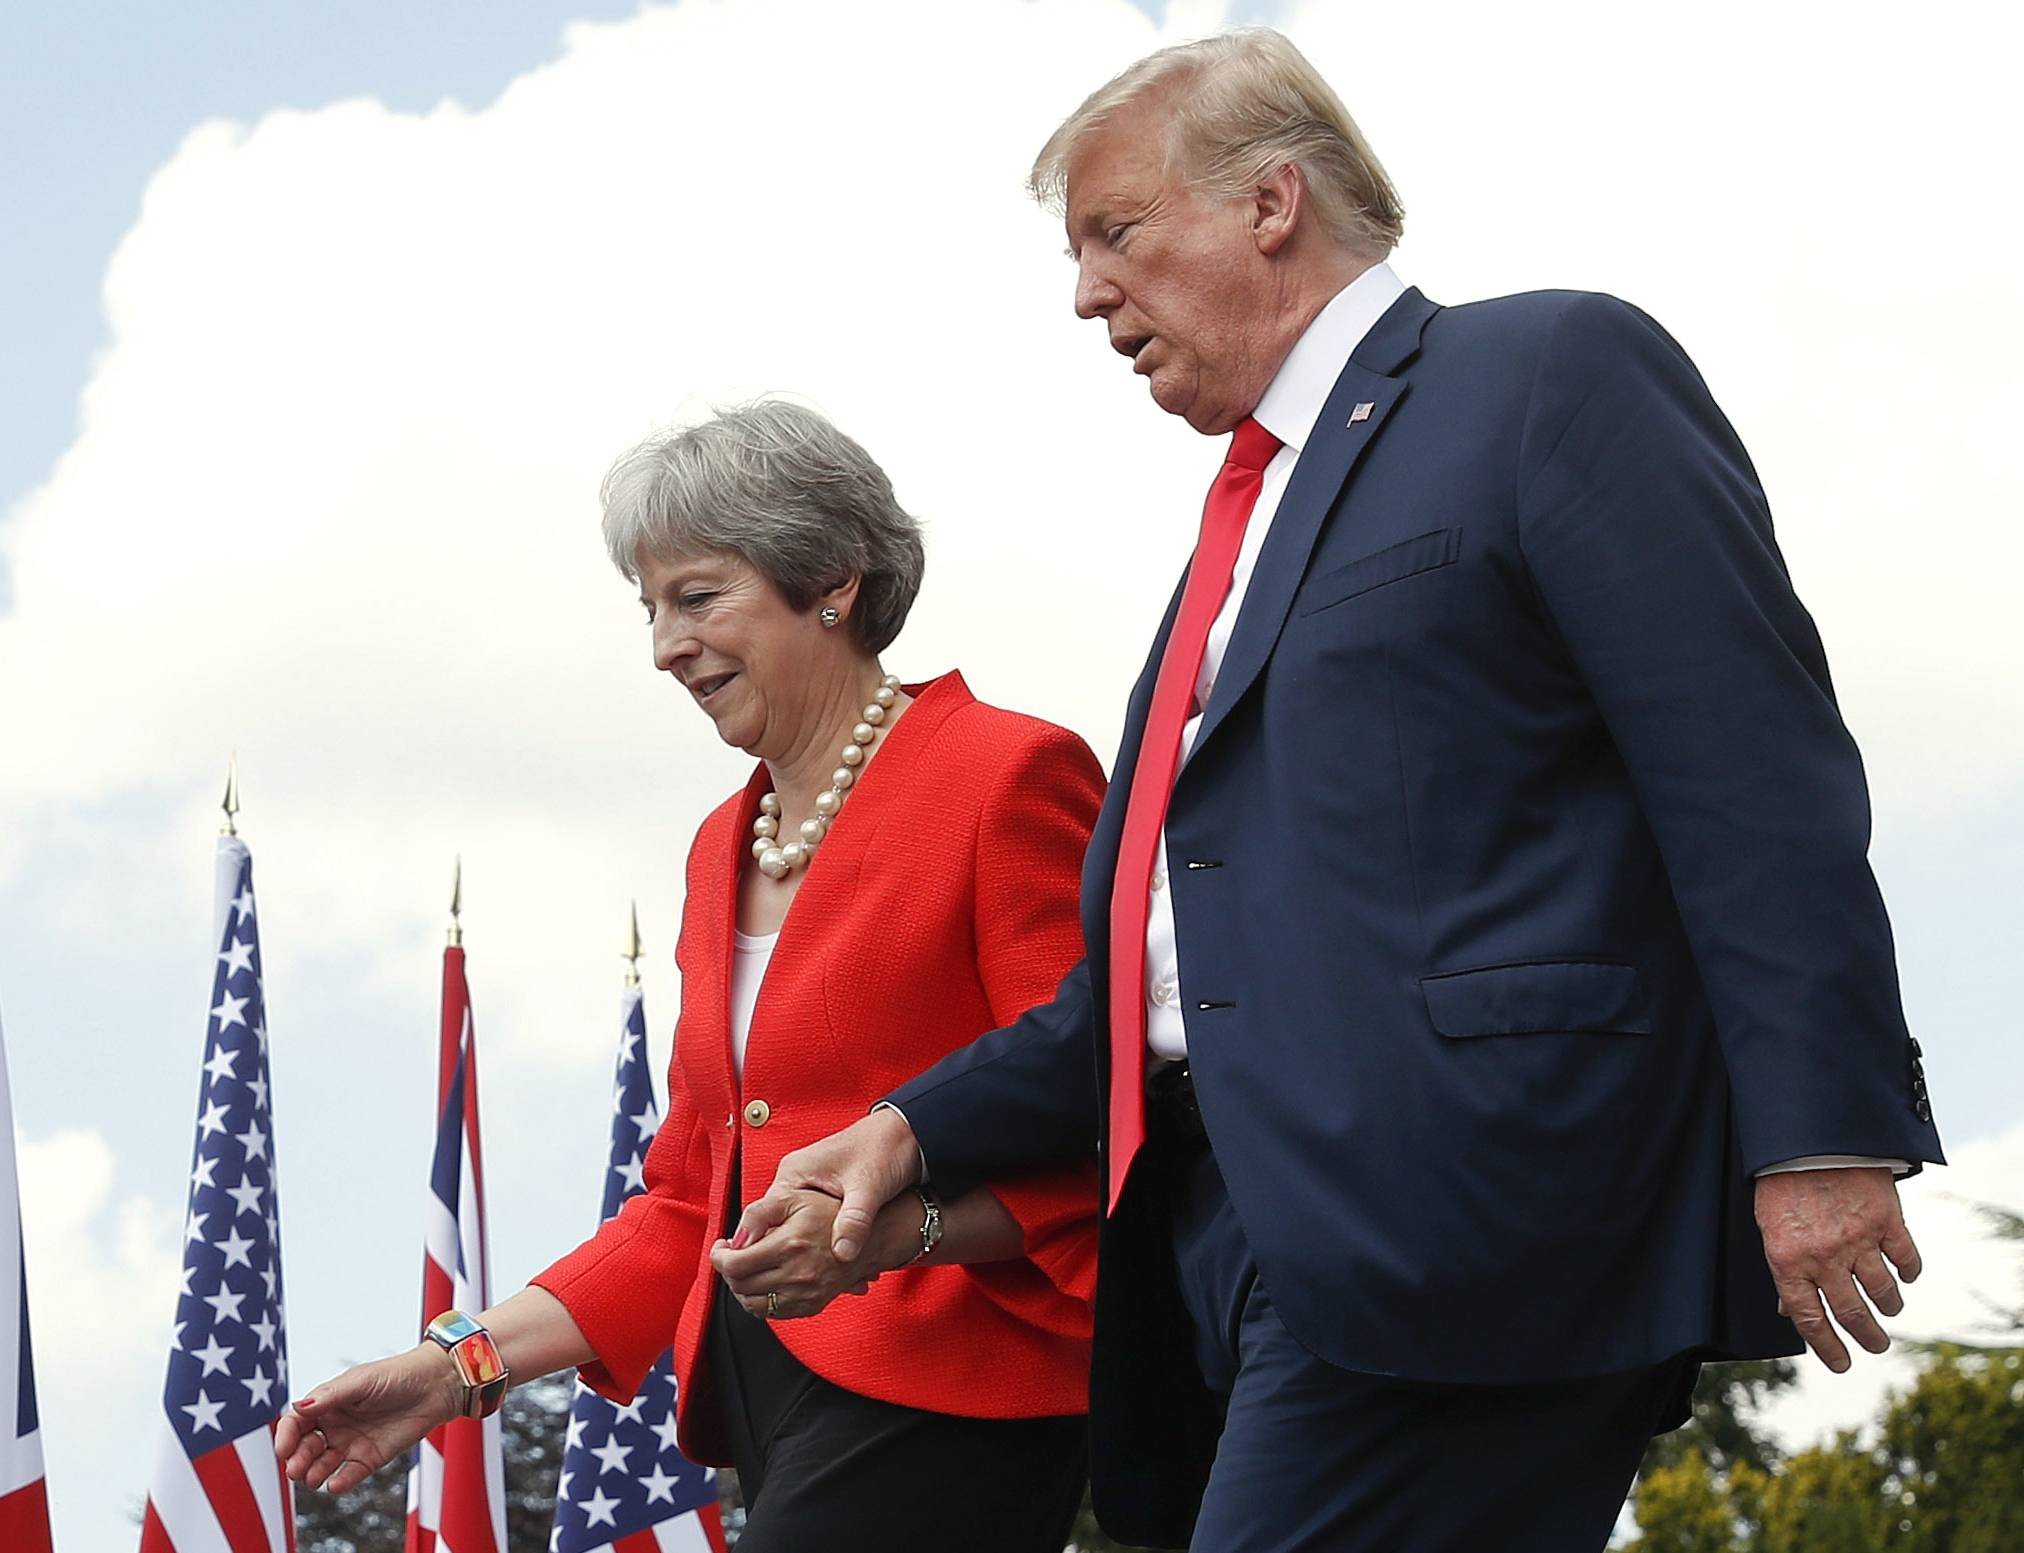 President Donald Trump and British Prime Minister Theresa May hold hands Friday at the conclusion of their joint news conference at Chequers in Buckinghamshire, England.